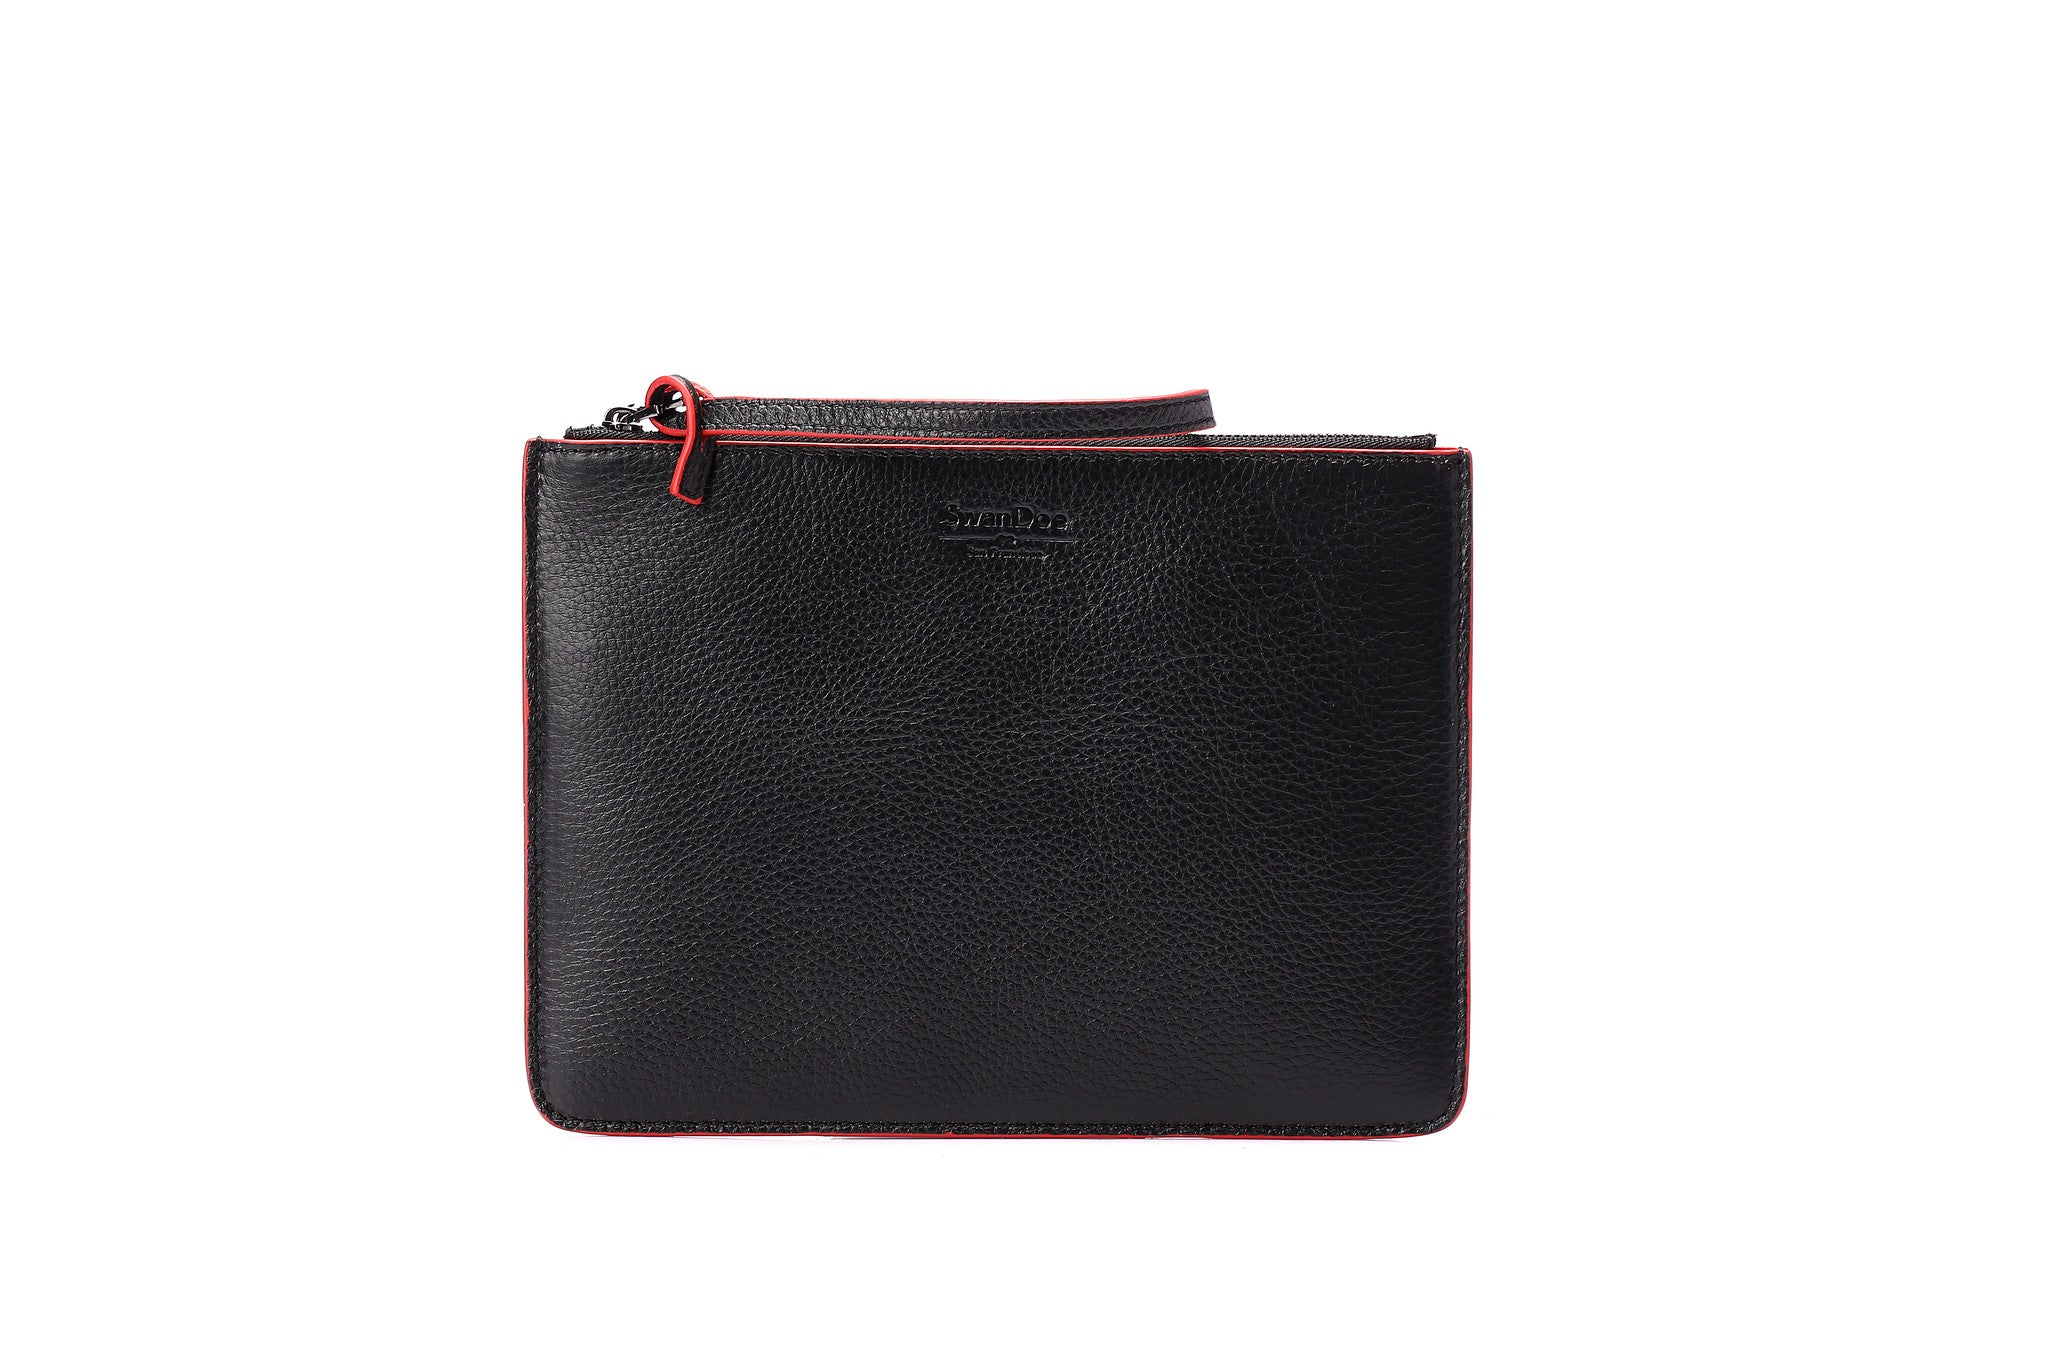 'On-The-Go' Wristlet - Document Holder